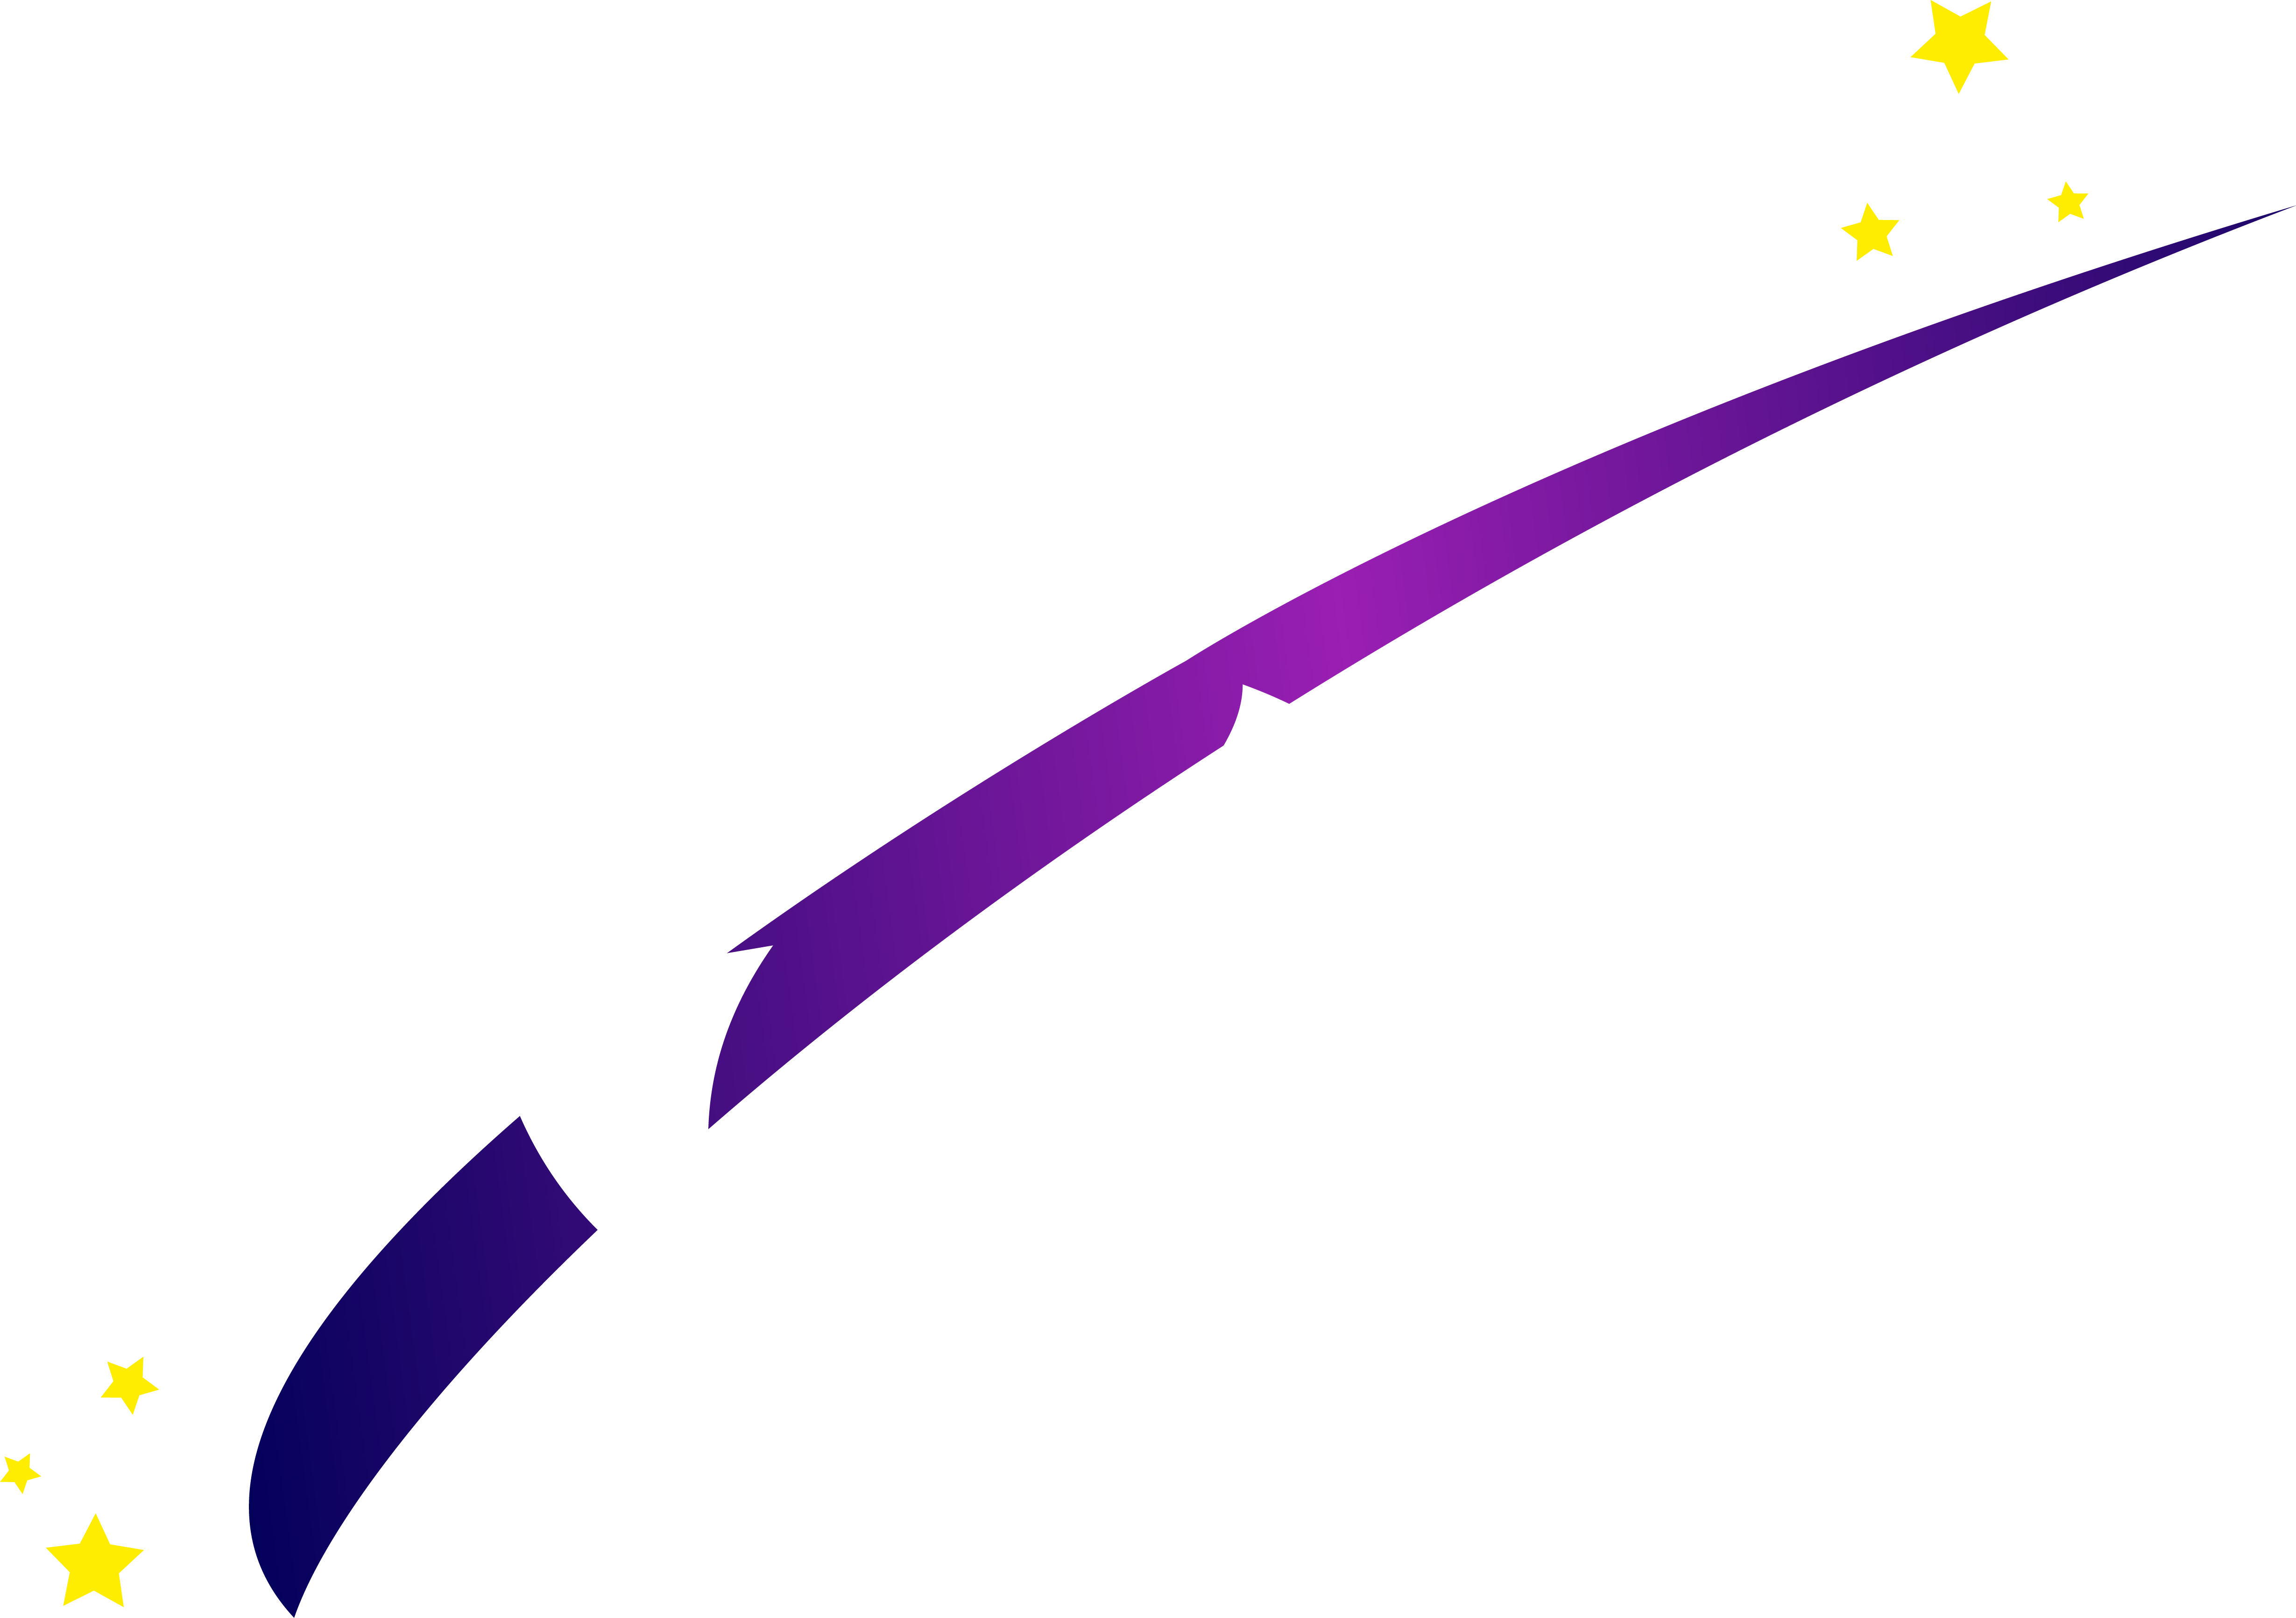 3A Production blanc